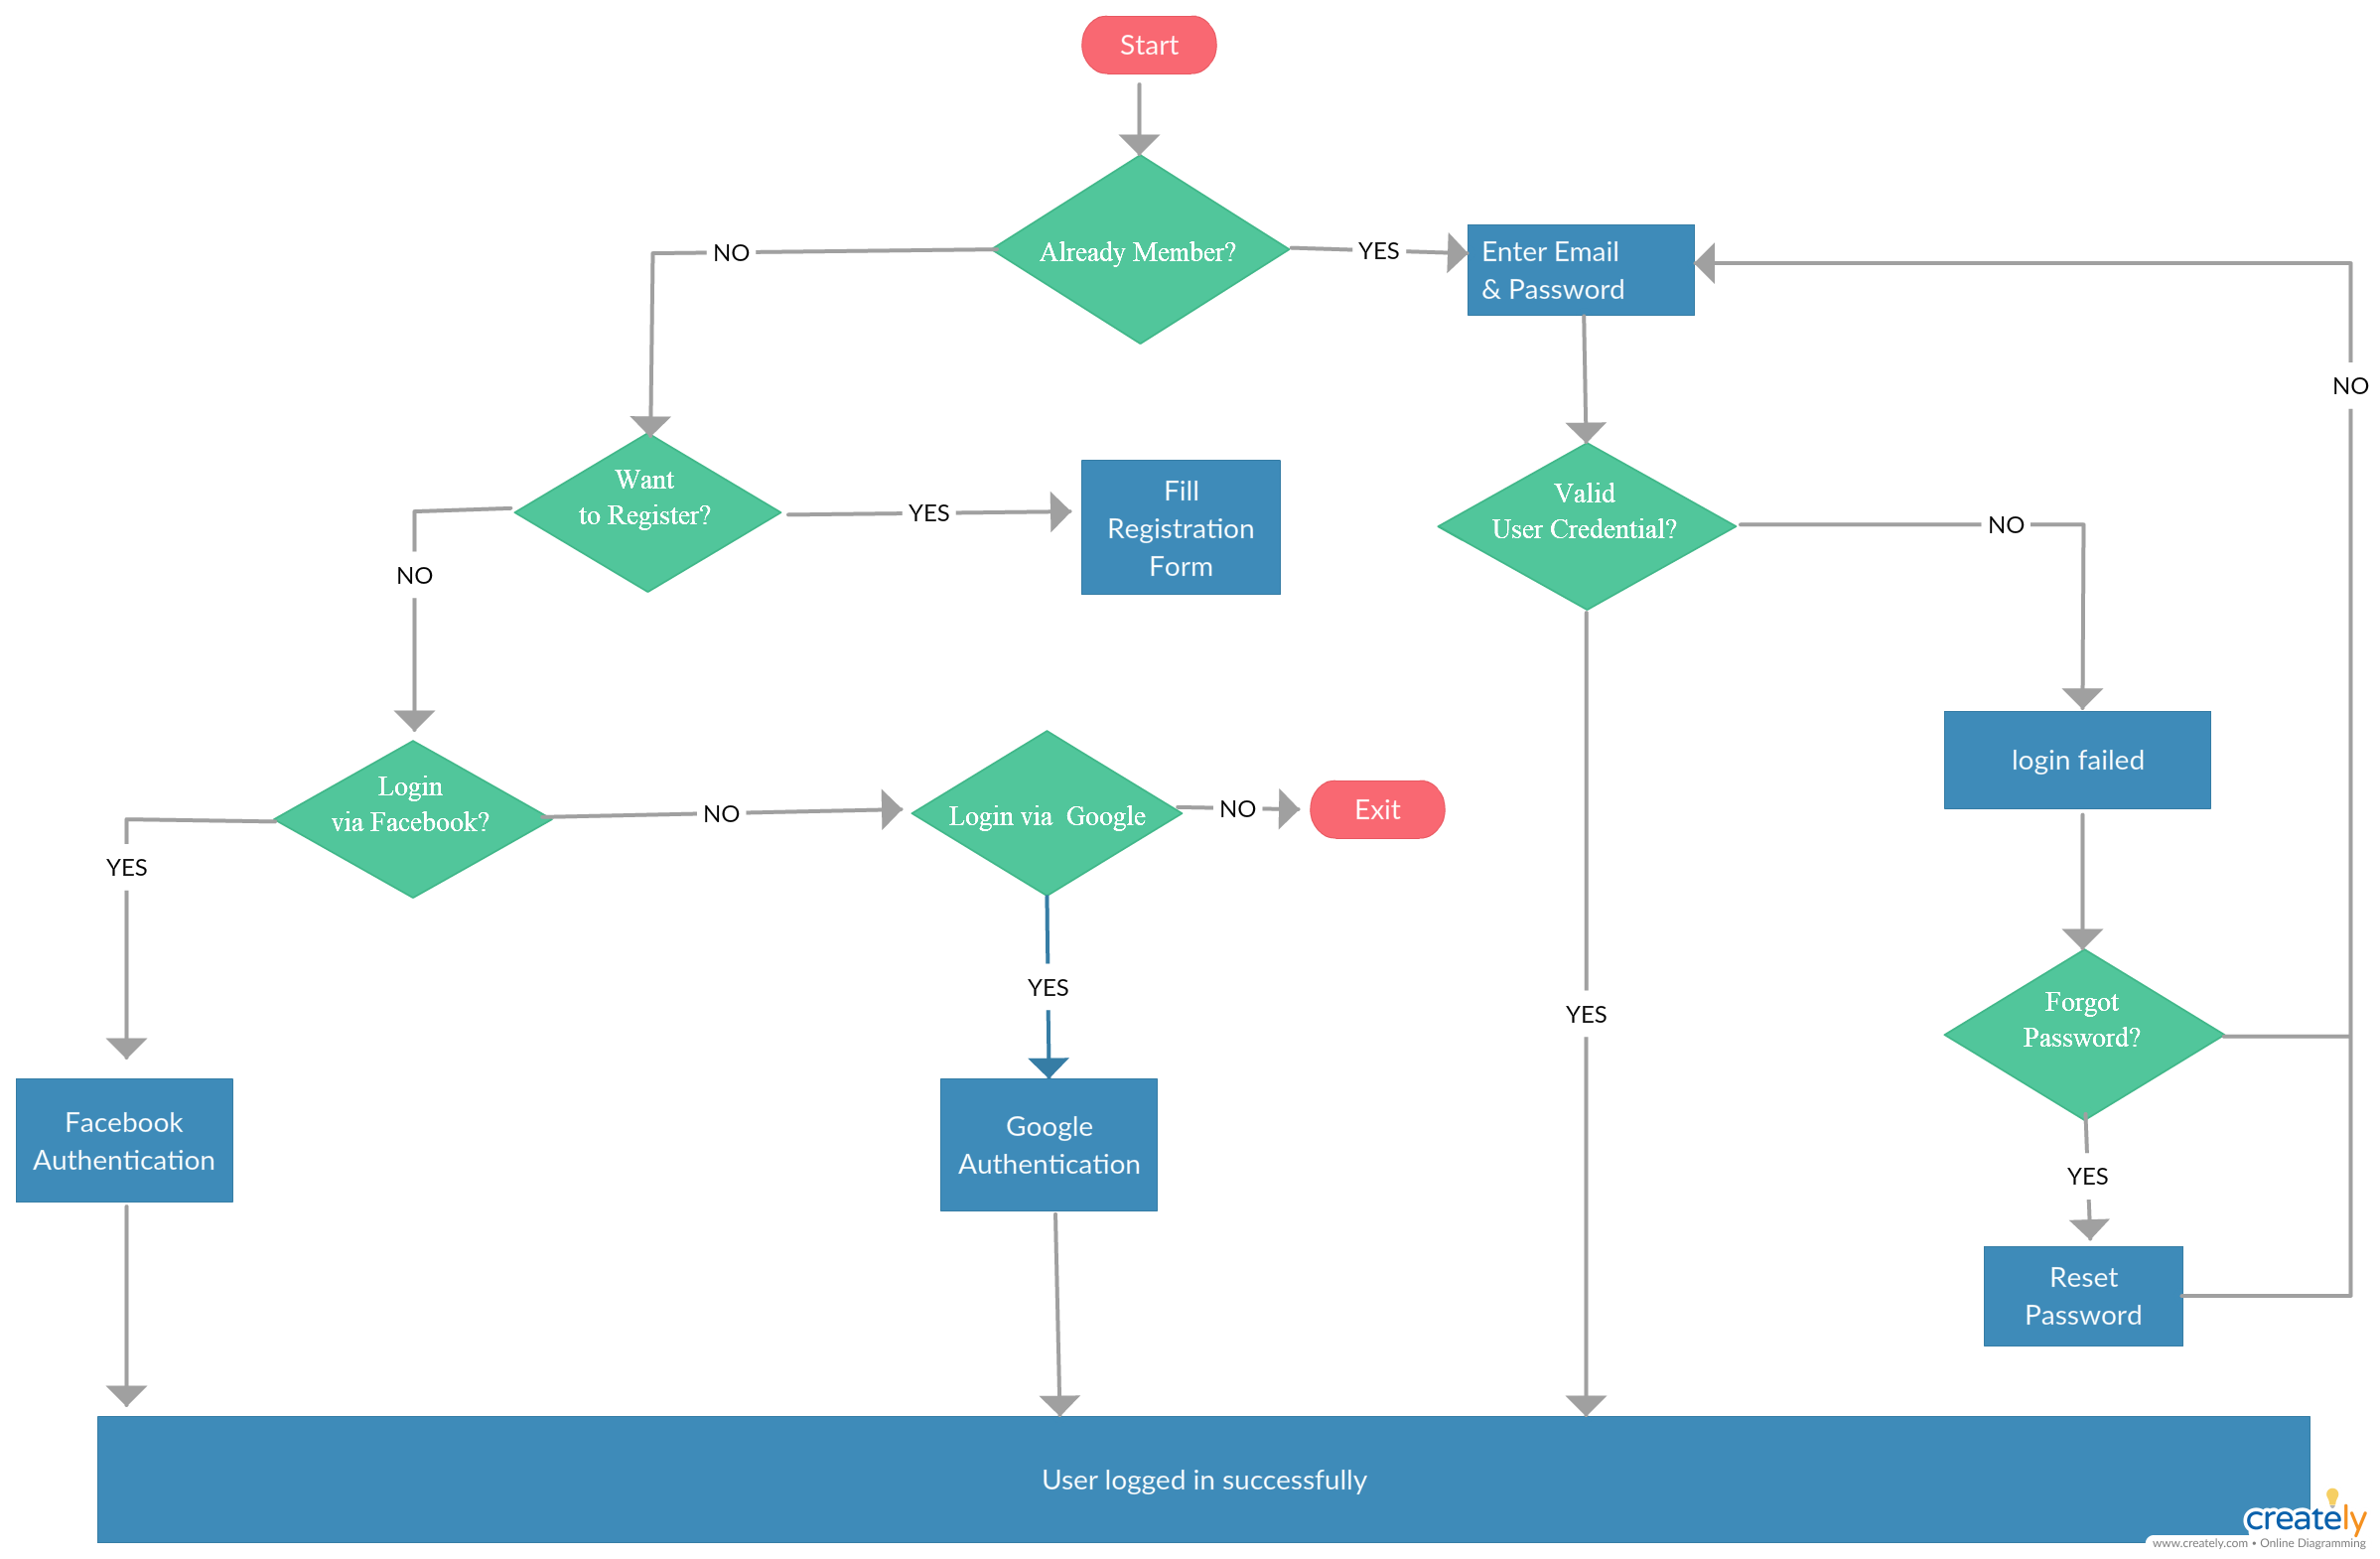 user registration process flow diagram user registration process flow diagram is how a user will do signup or log in using facebook google or email to  [ 2397 x 1570 Pixel ]